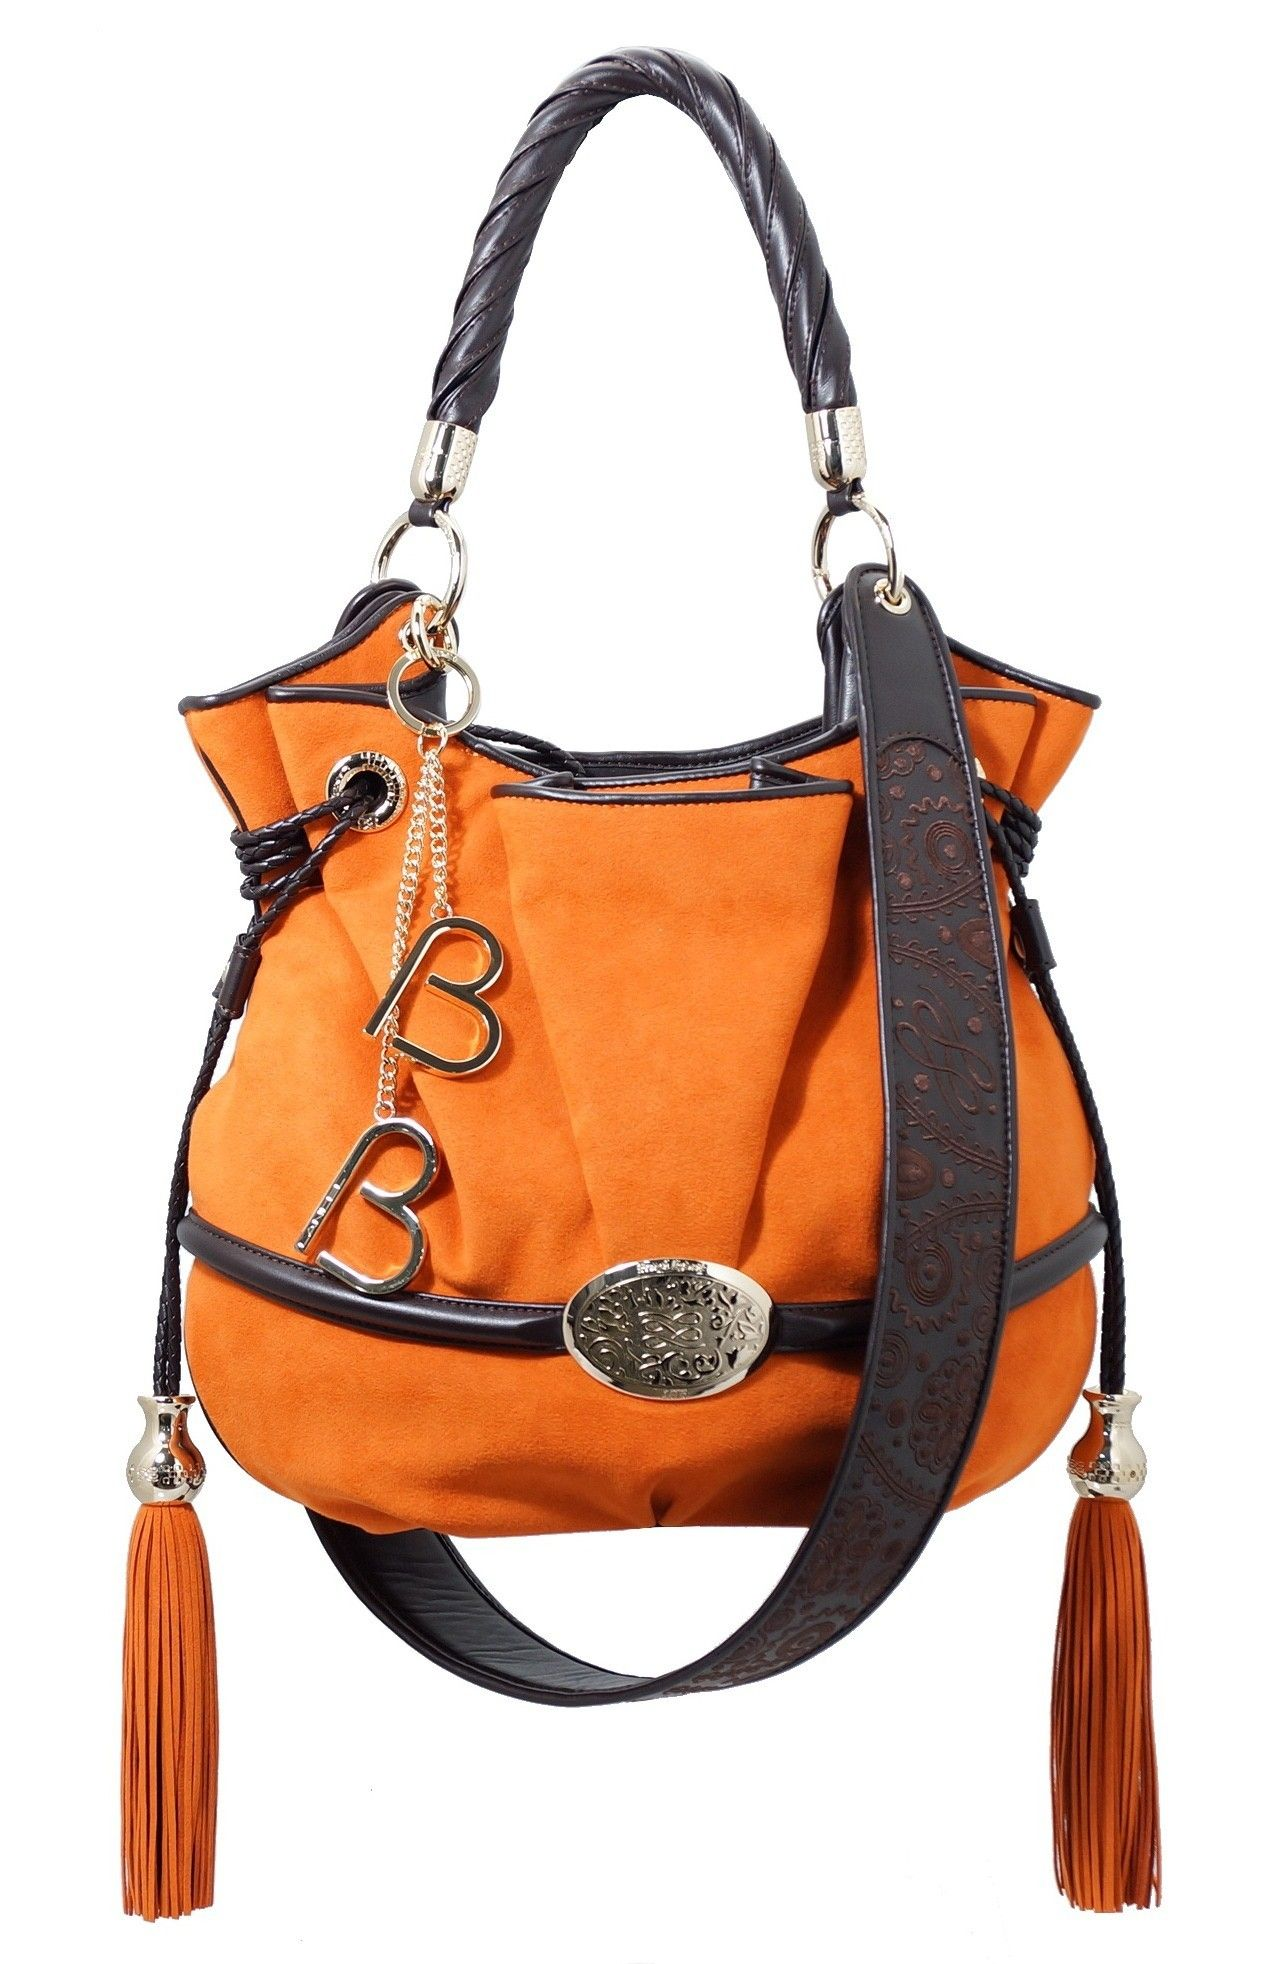 Sacs à Main Lancel Soldes : Sac ? main lancel brigitte bardot cuir mat orange